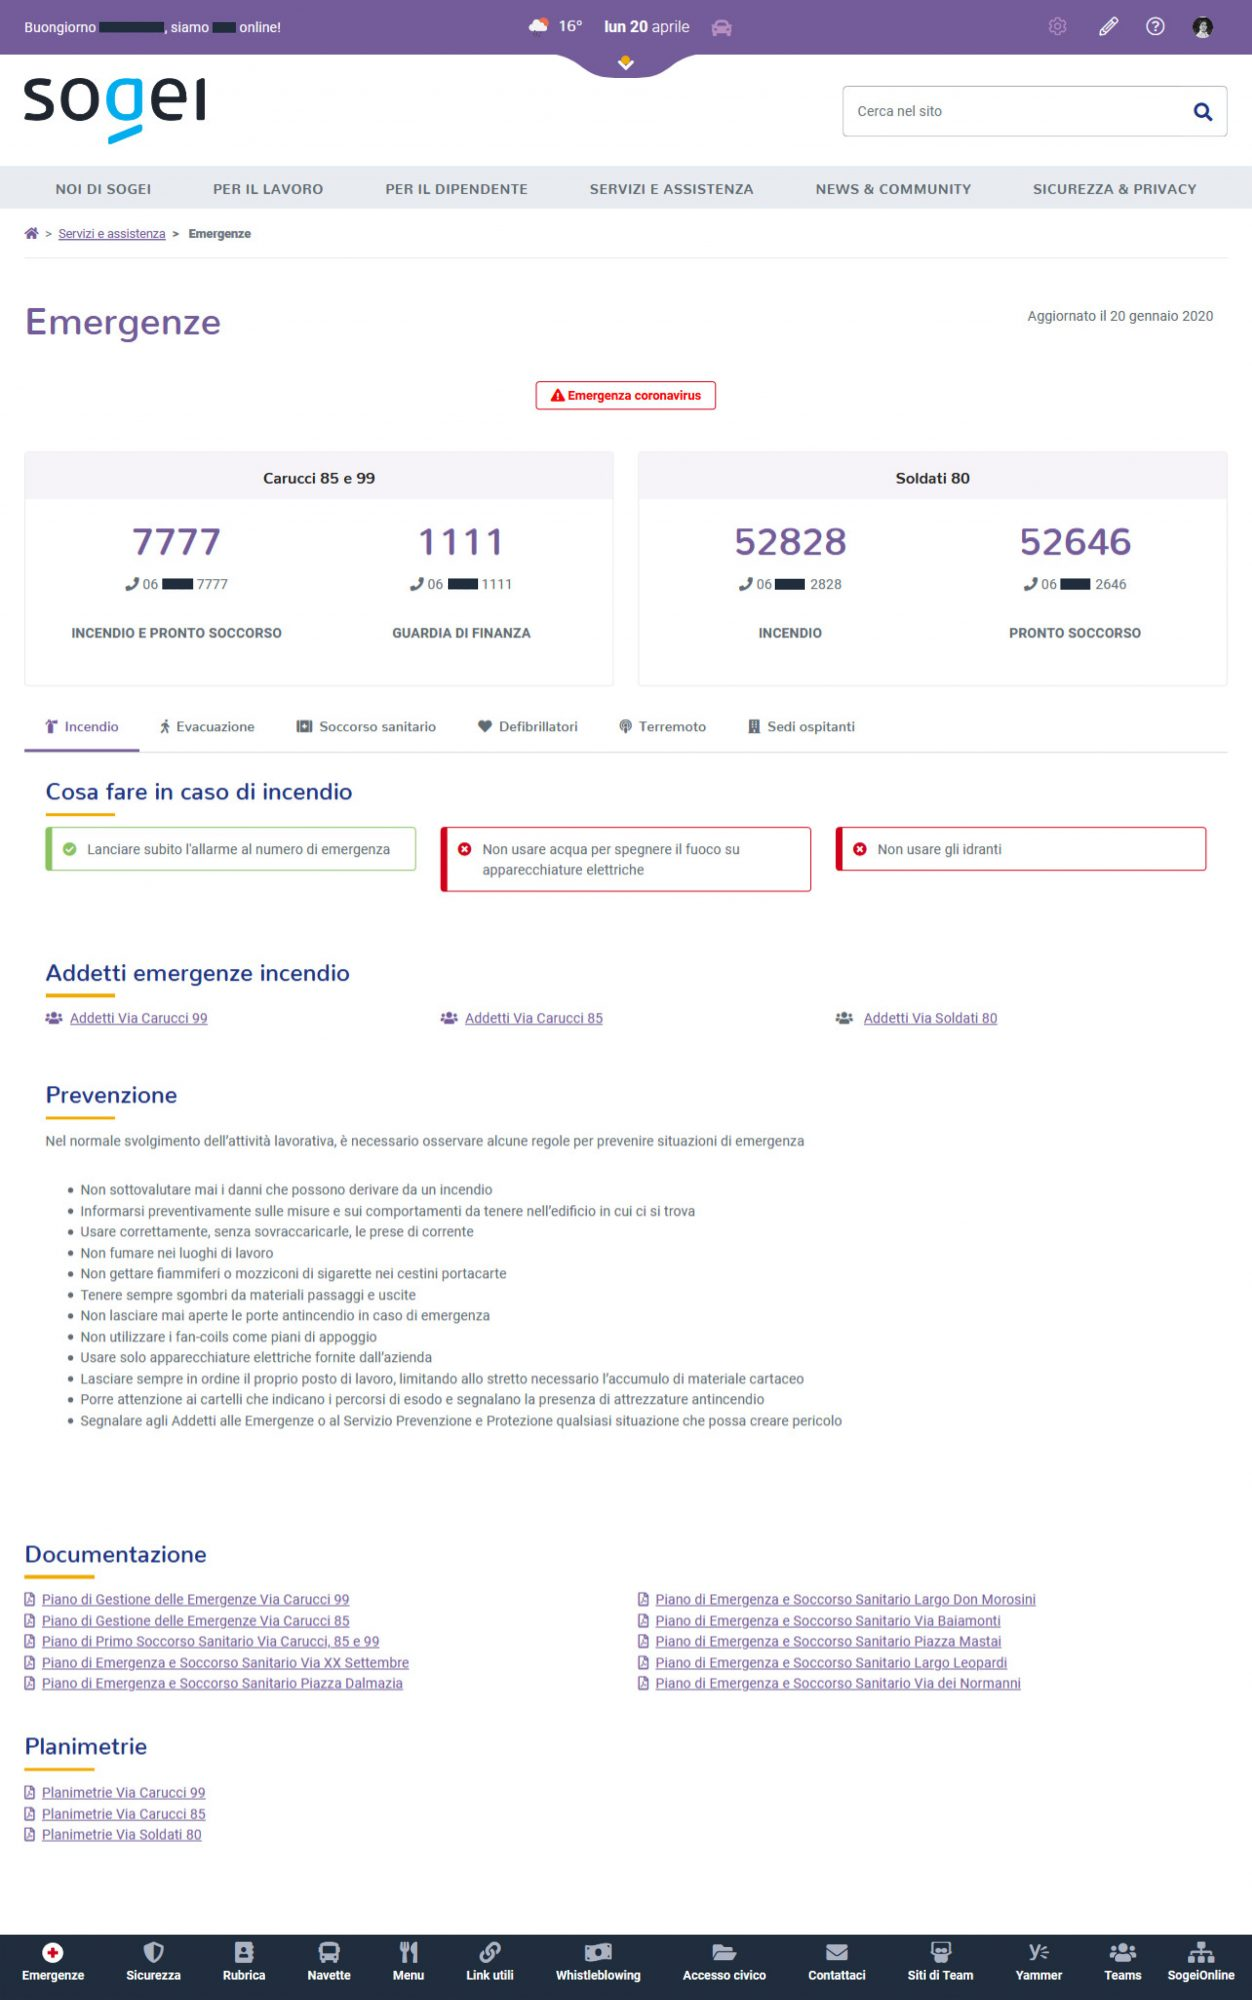 Pagina emergenze intranet Sogei